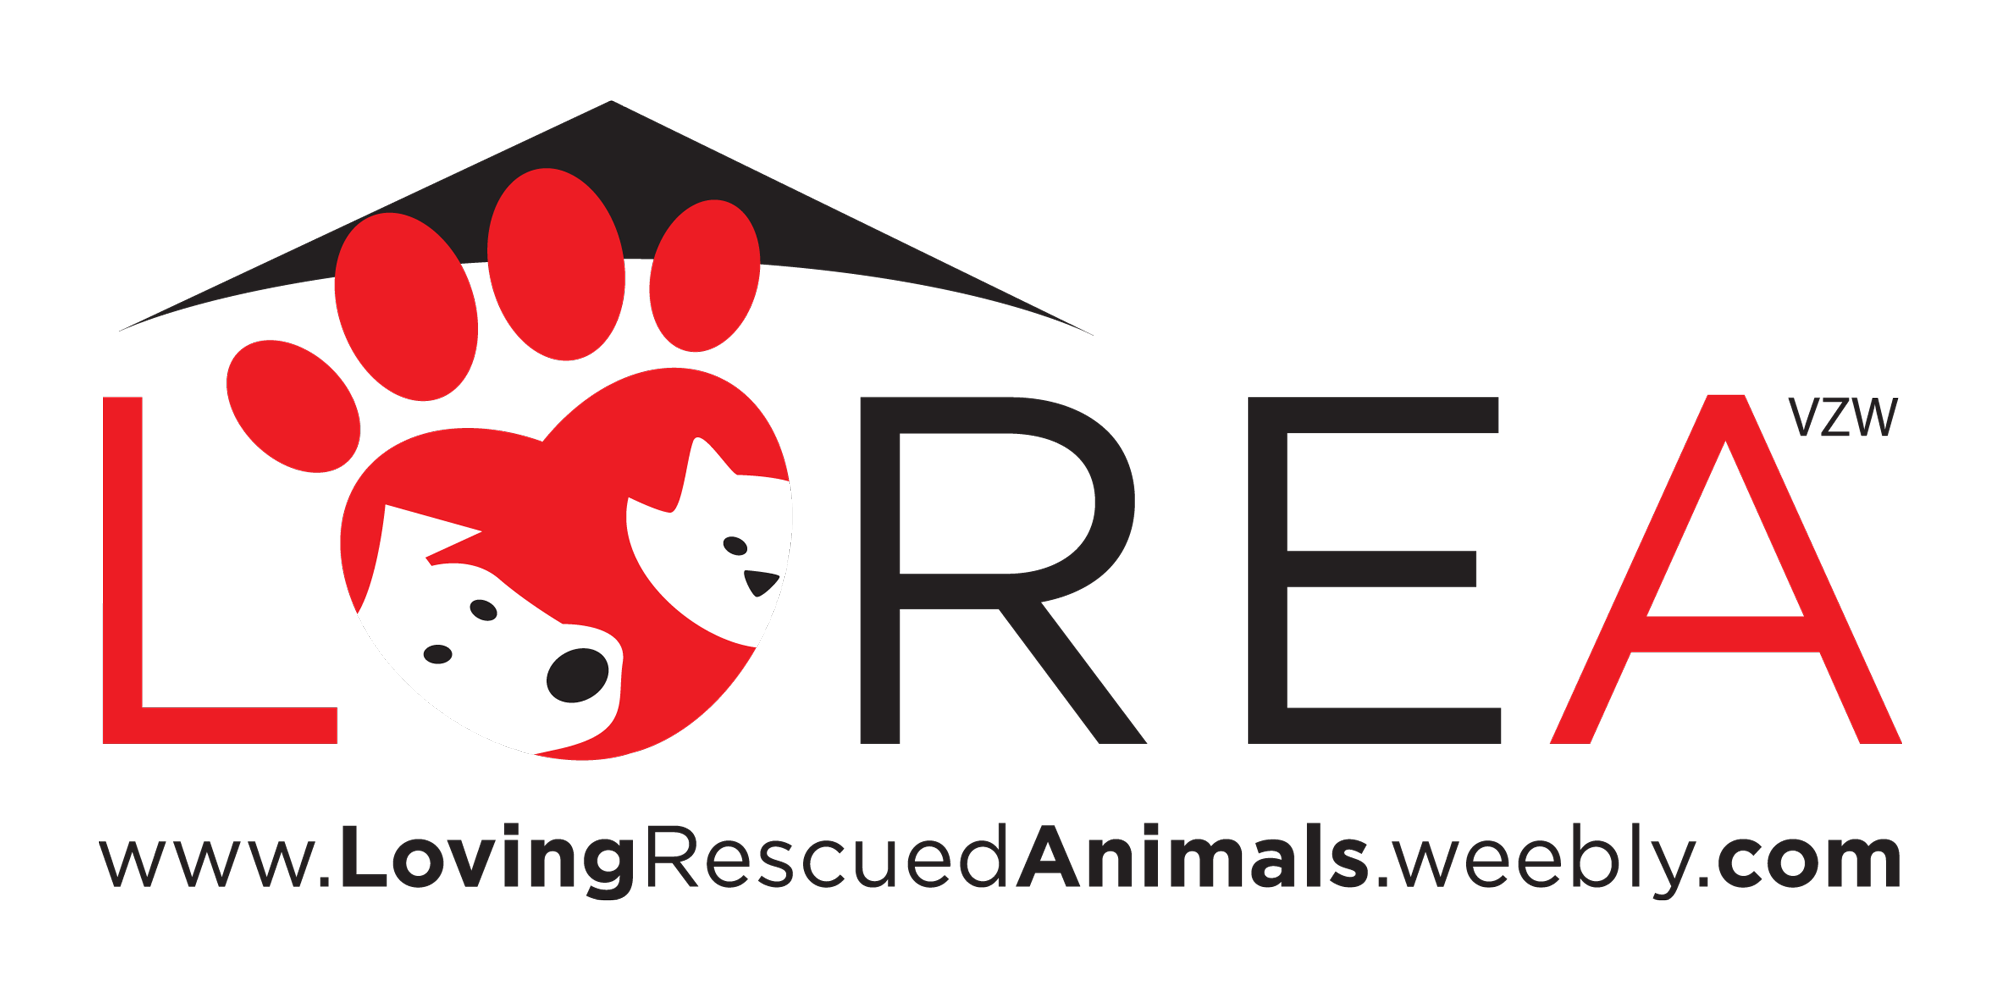 Loving Rescued Animals vzw